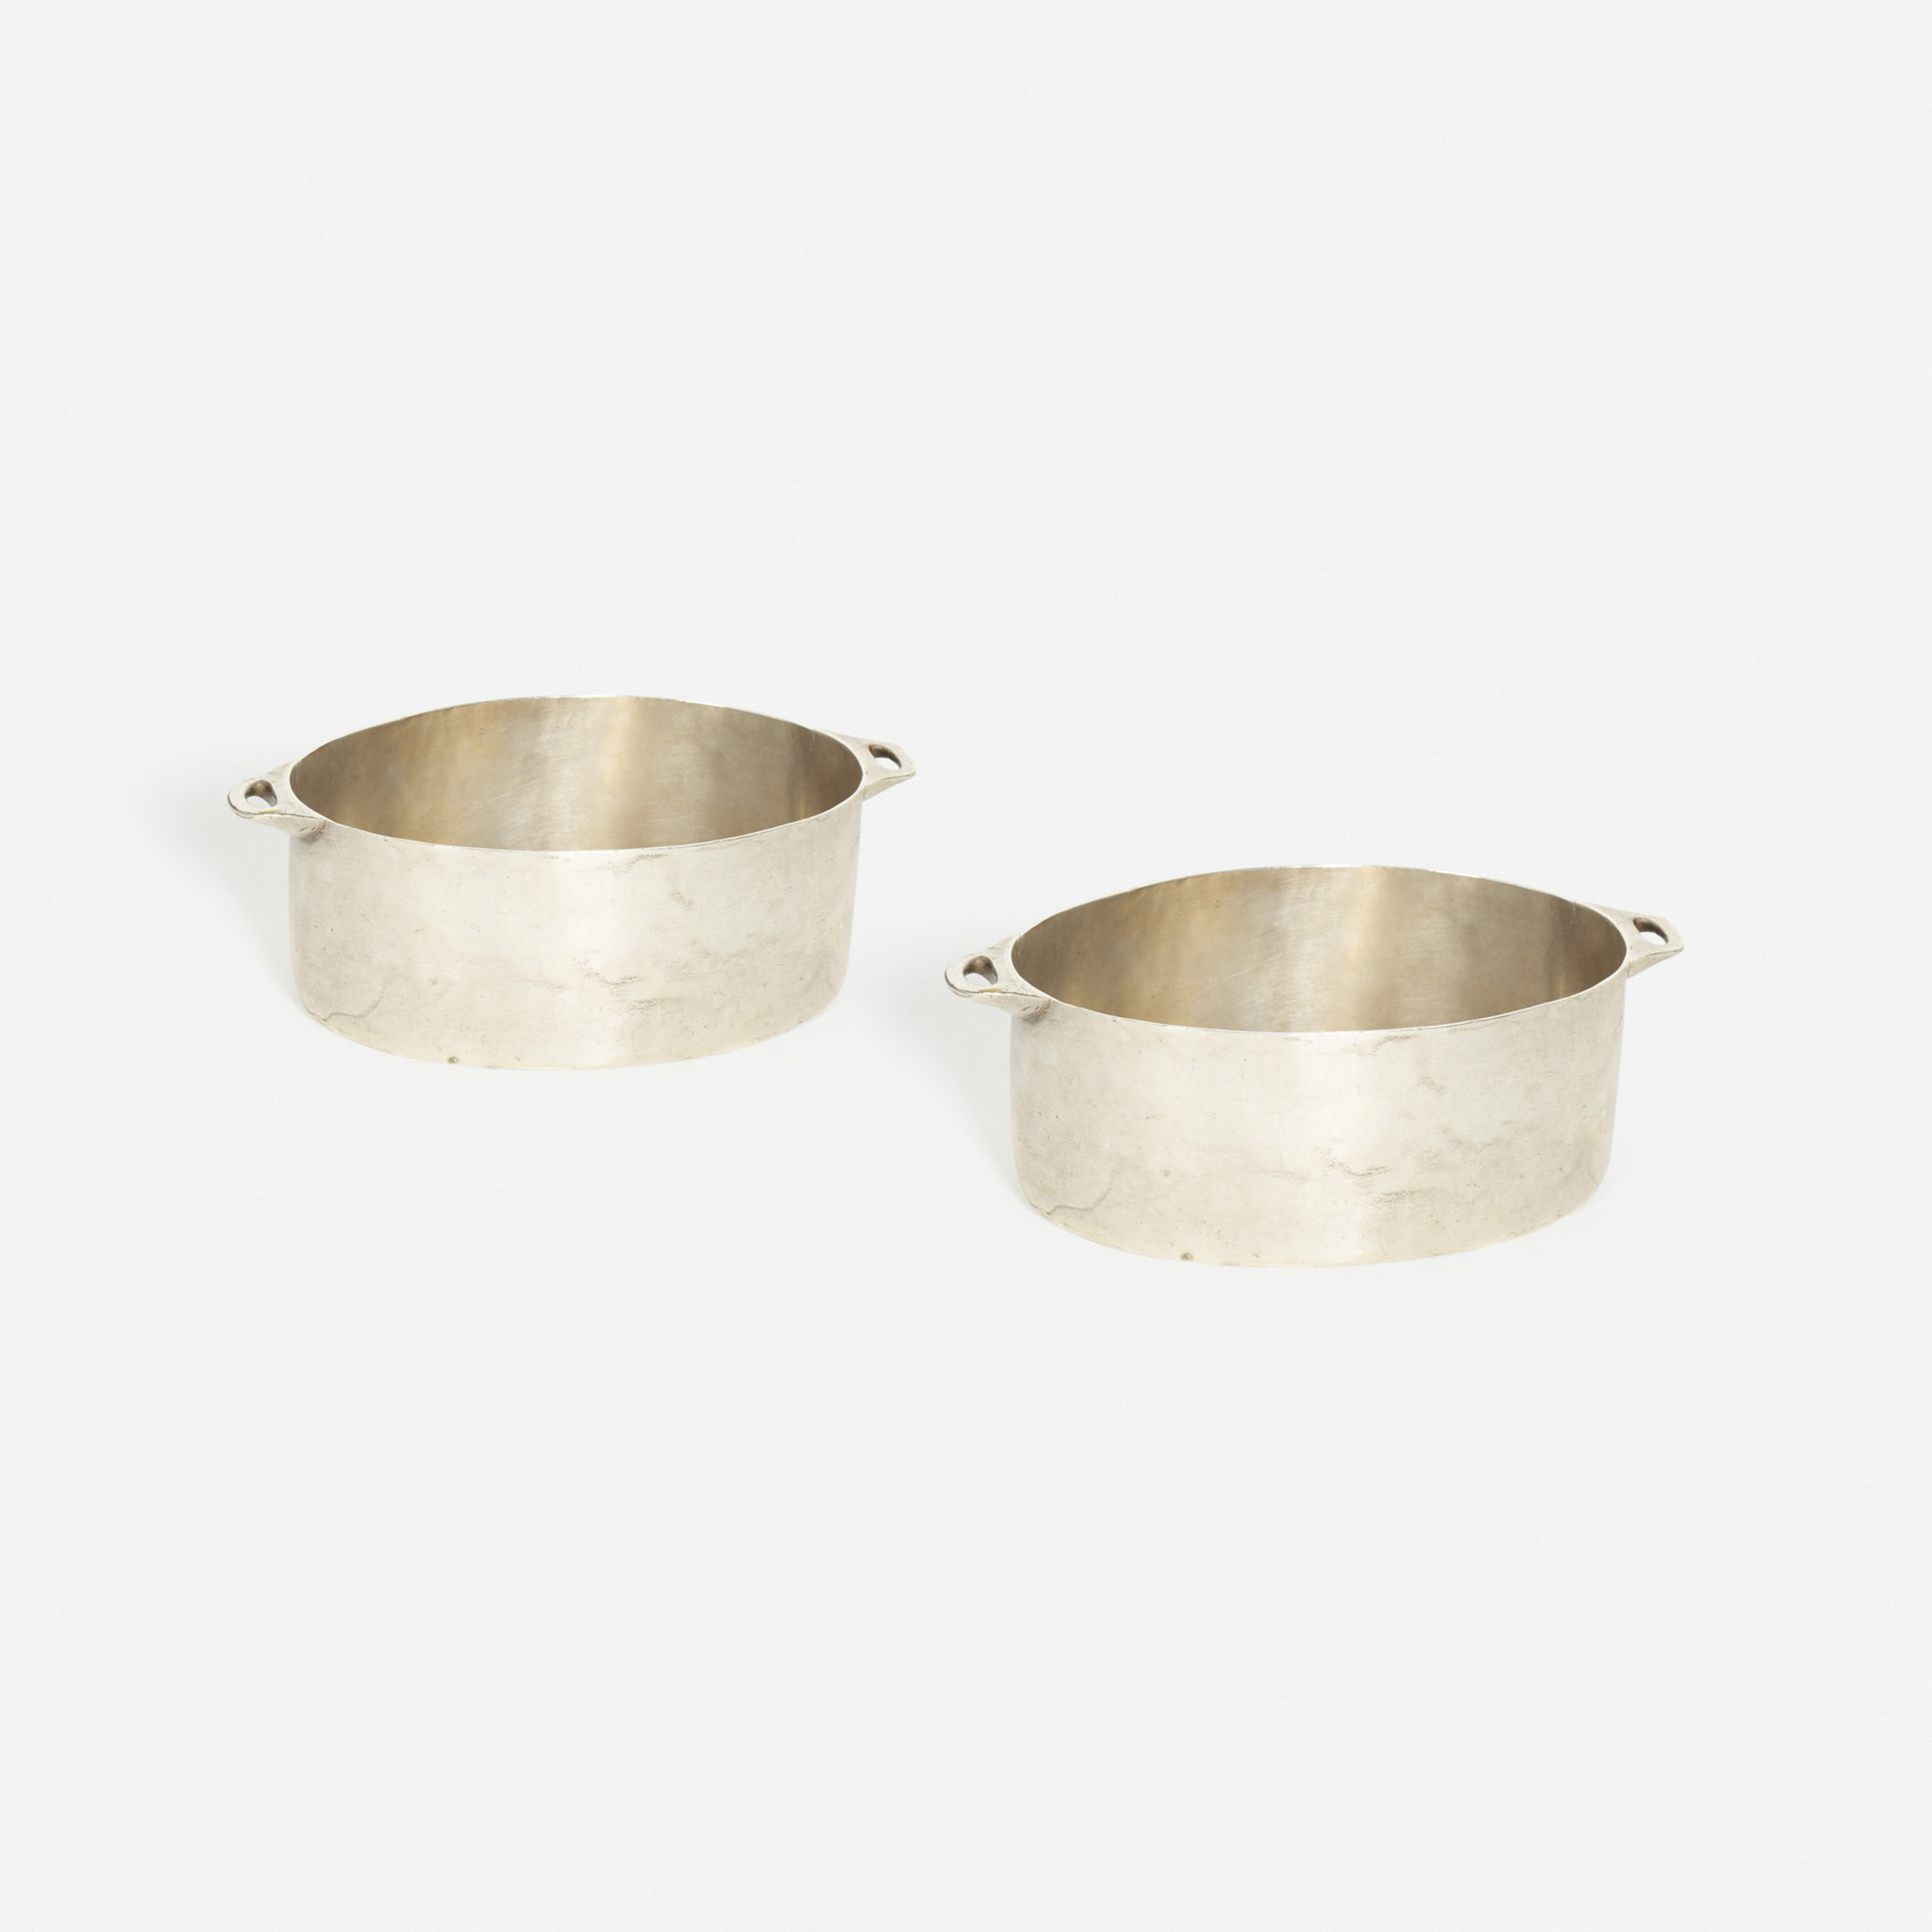 850: Garth and Ada Louise Huxtable / pots from the kitchen of The Four Seasons, pair (1 of 1)